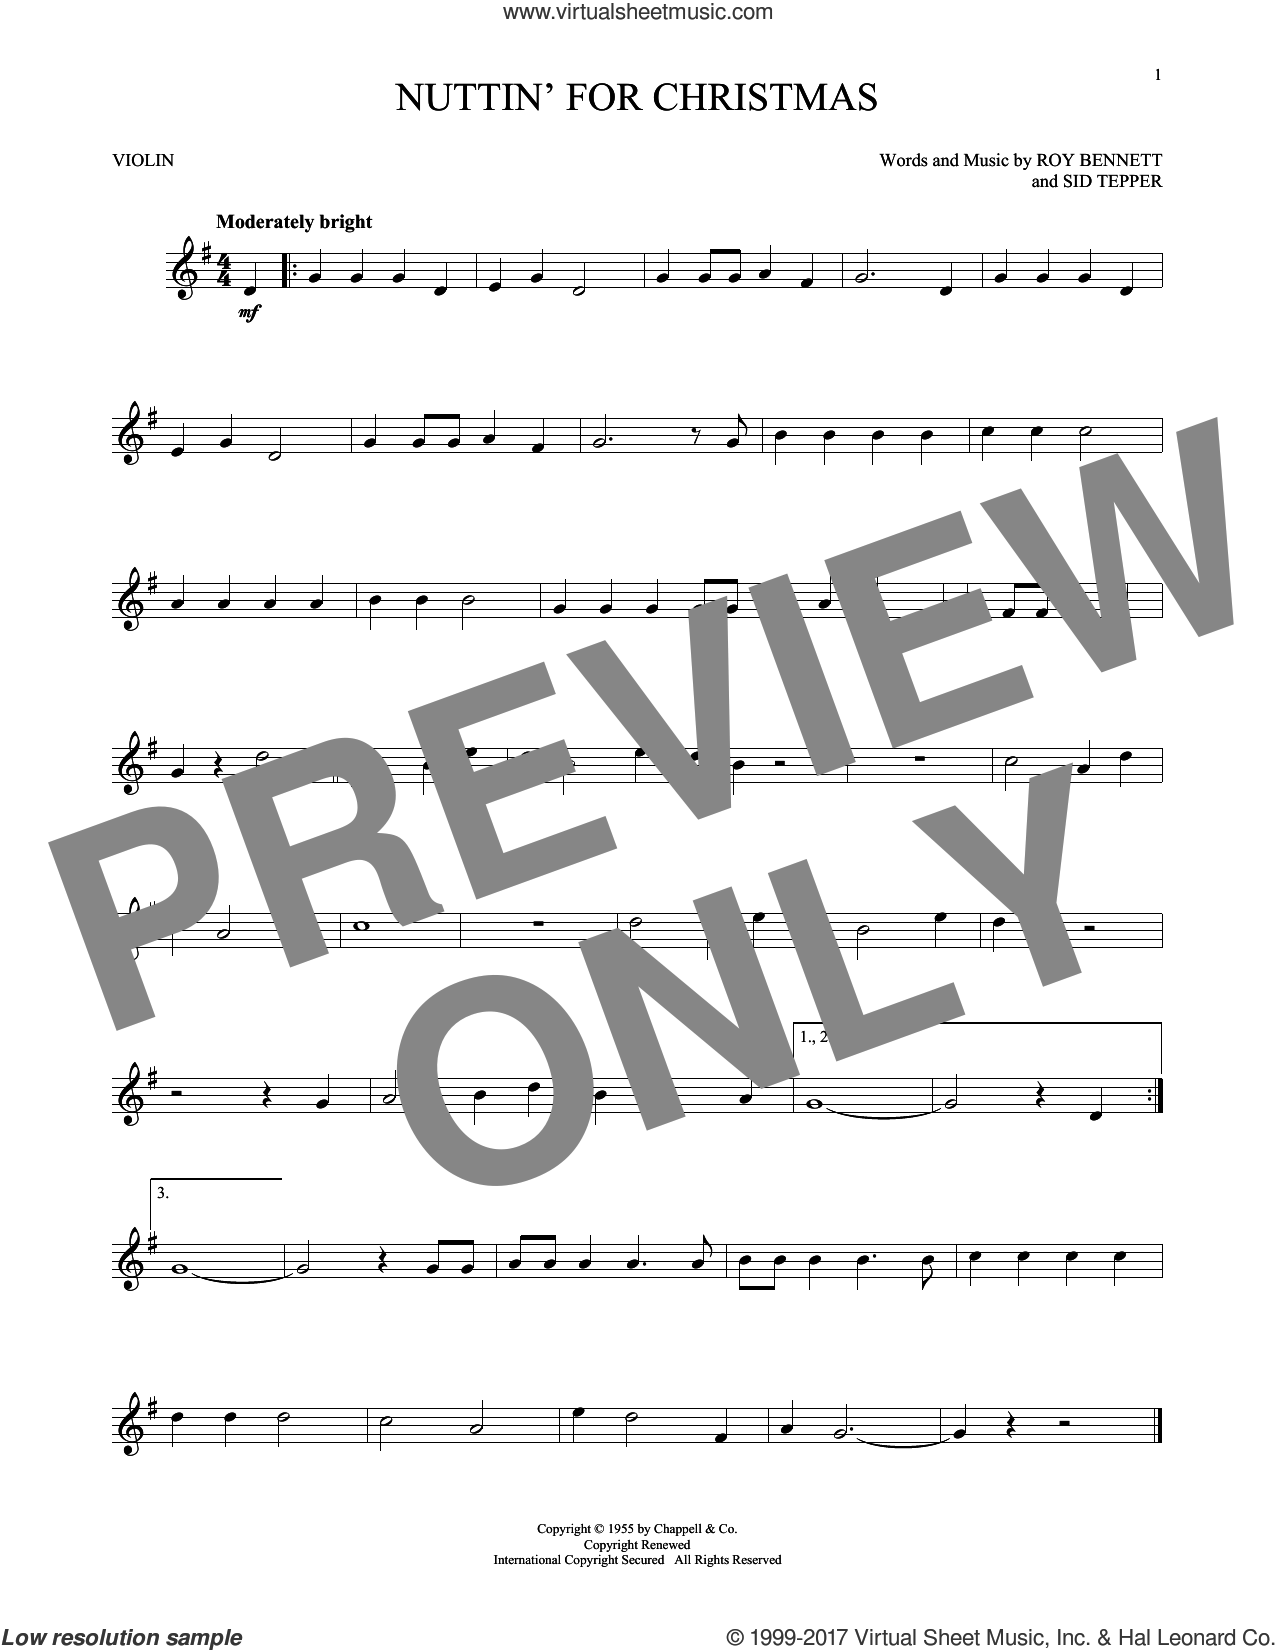 Nuttin' For Christmas sheet music for violin solo by Roy Bennett and Sid Tepper, intermediate skill level